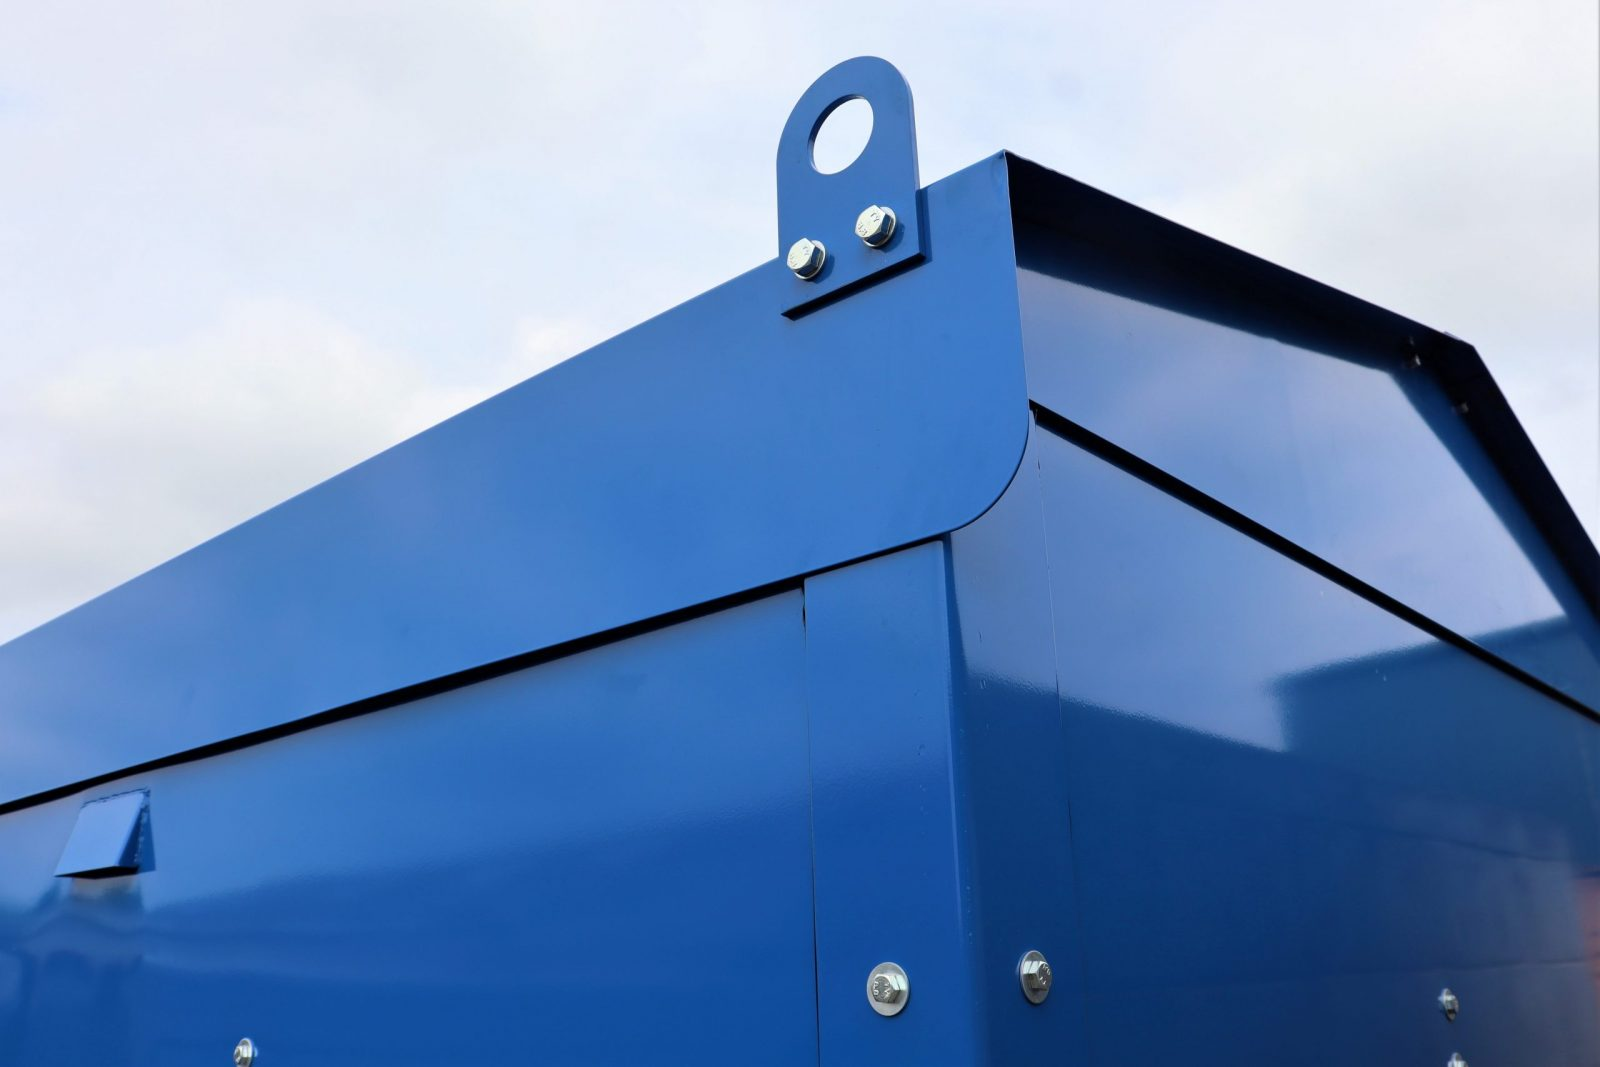 Chemical Store VCS1500 has roof lugs for easy lifting